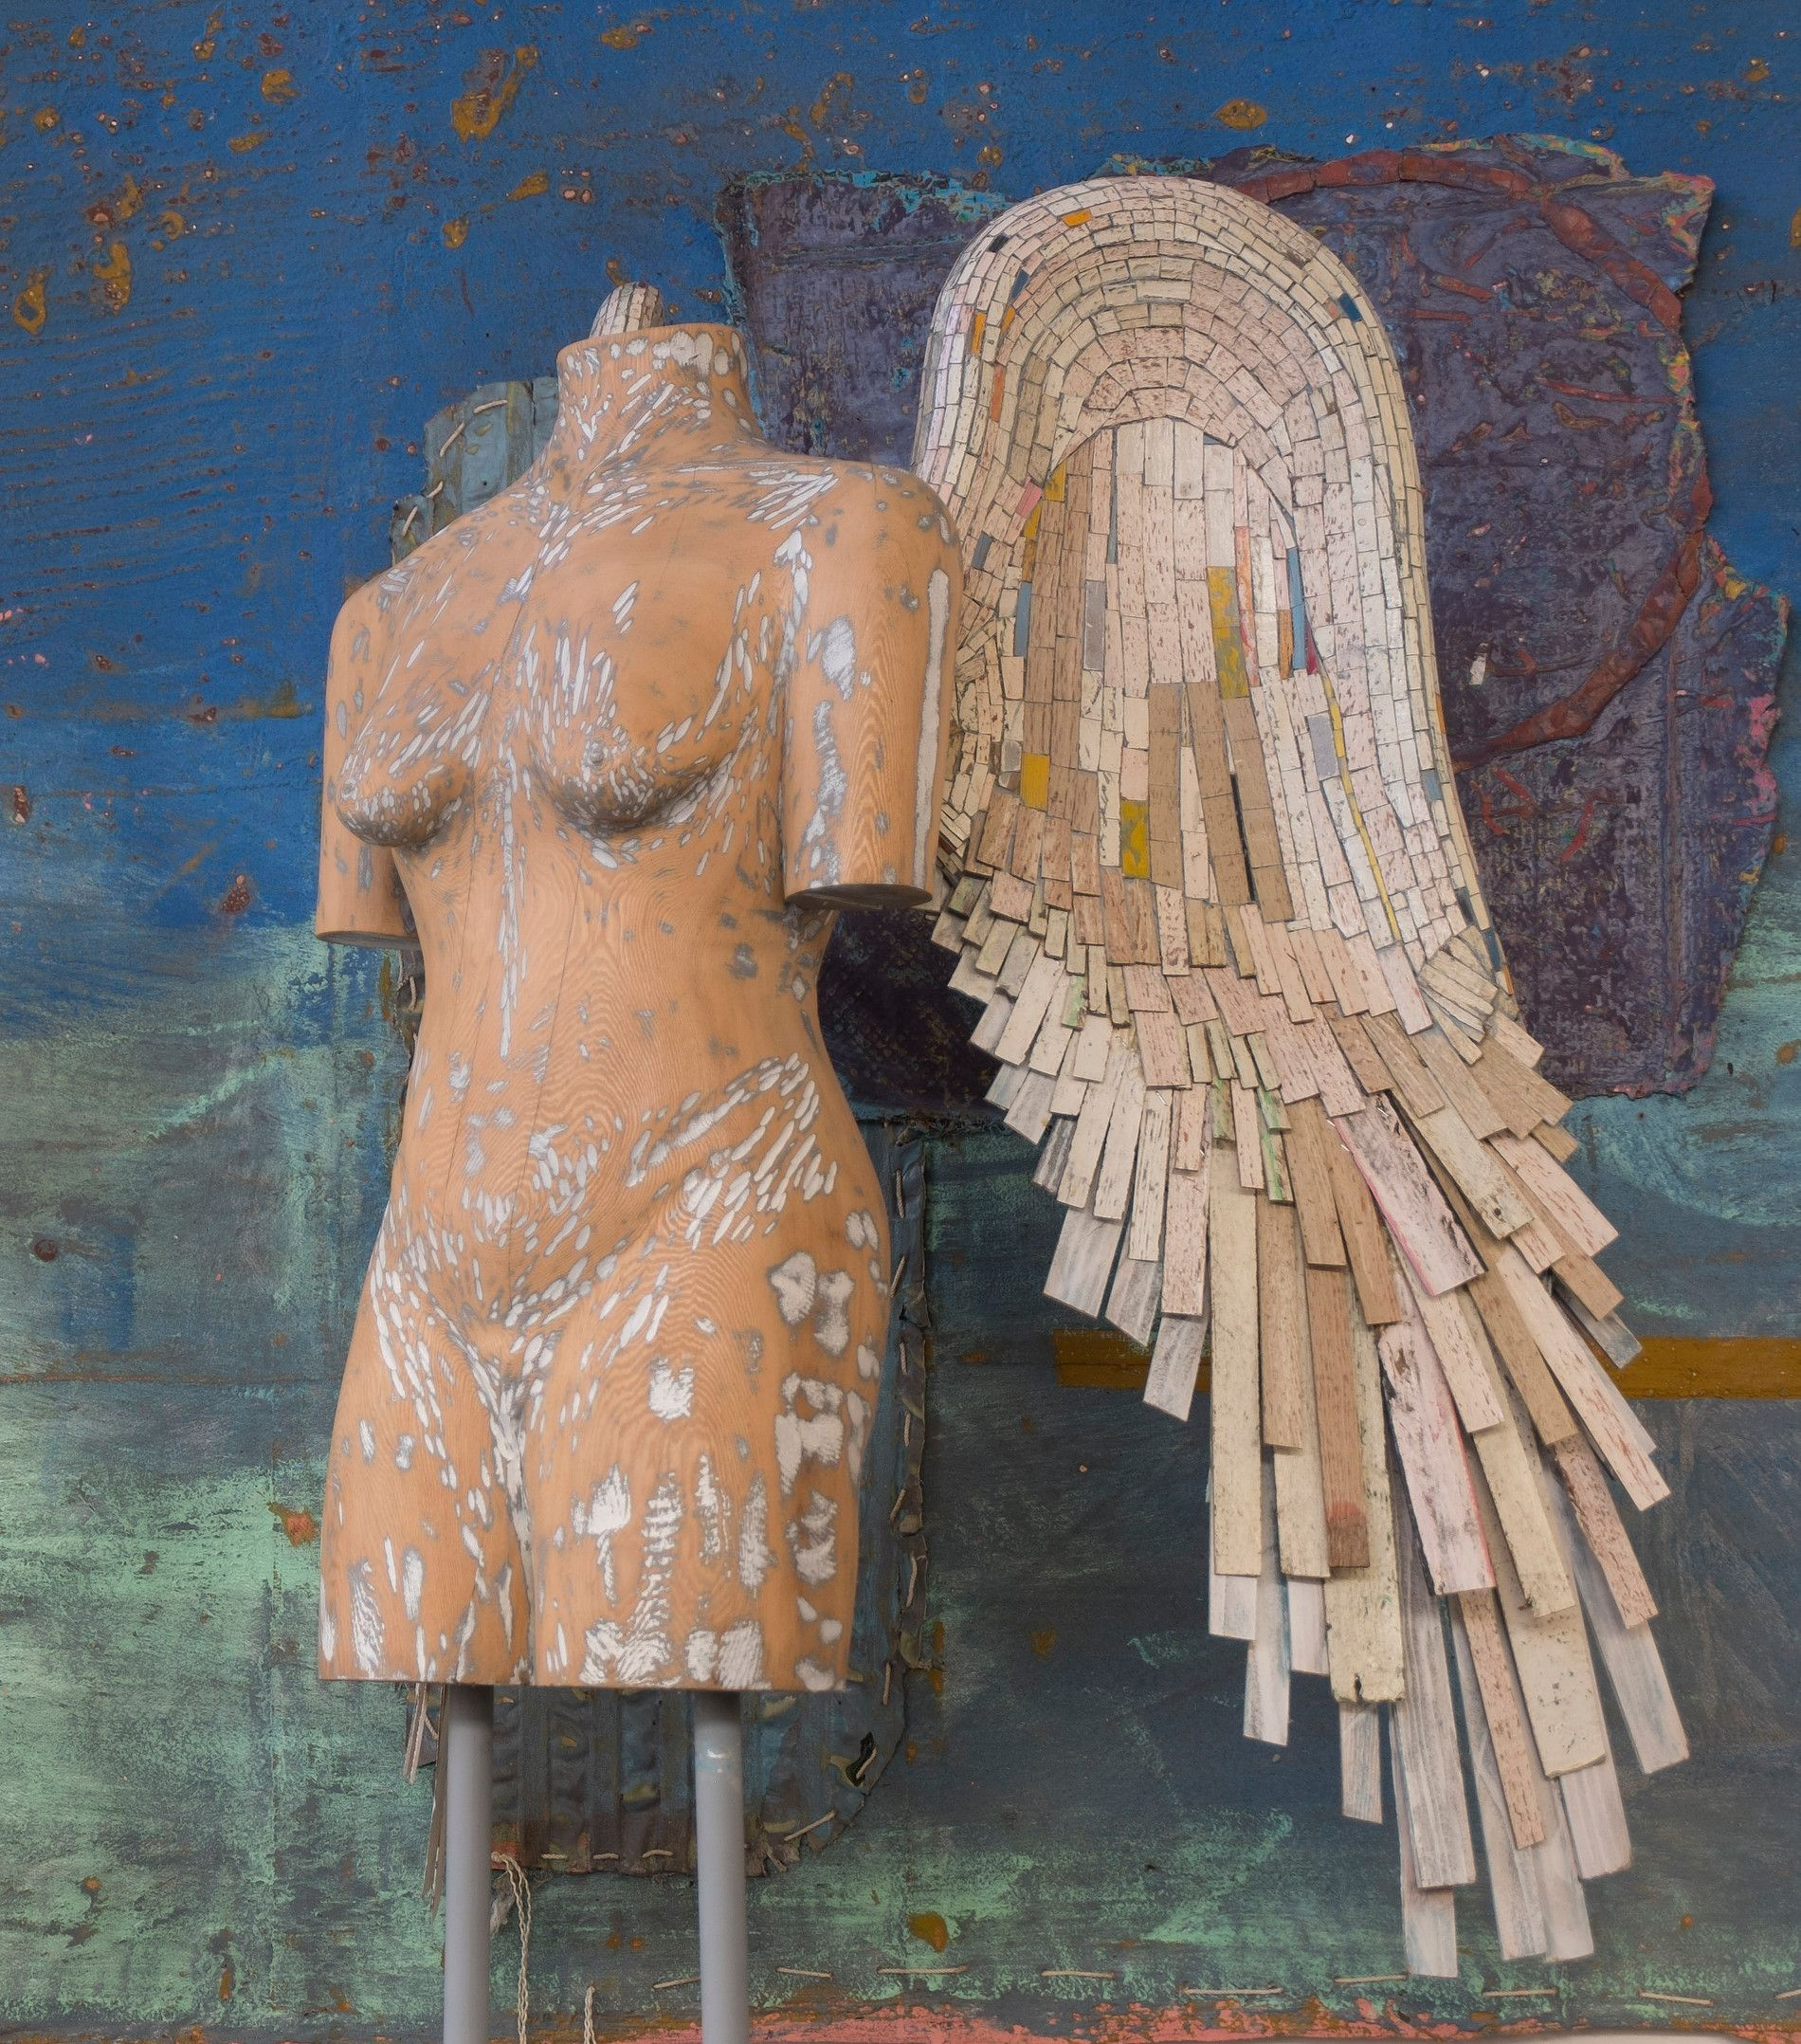 DELOSS WEBBER, Visitation, mixed media, carved wood with